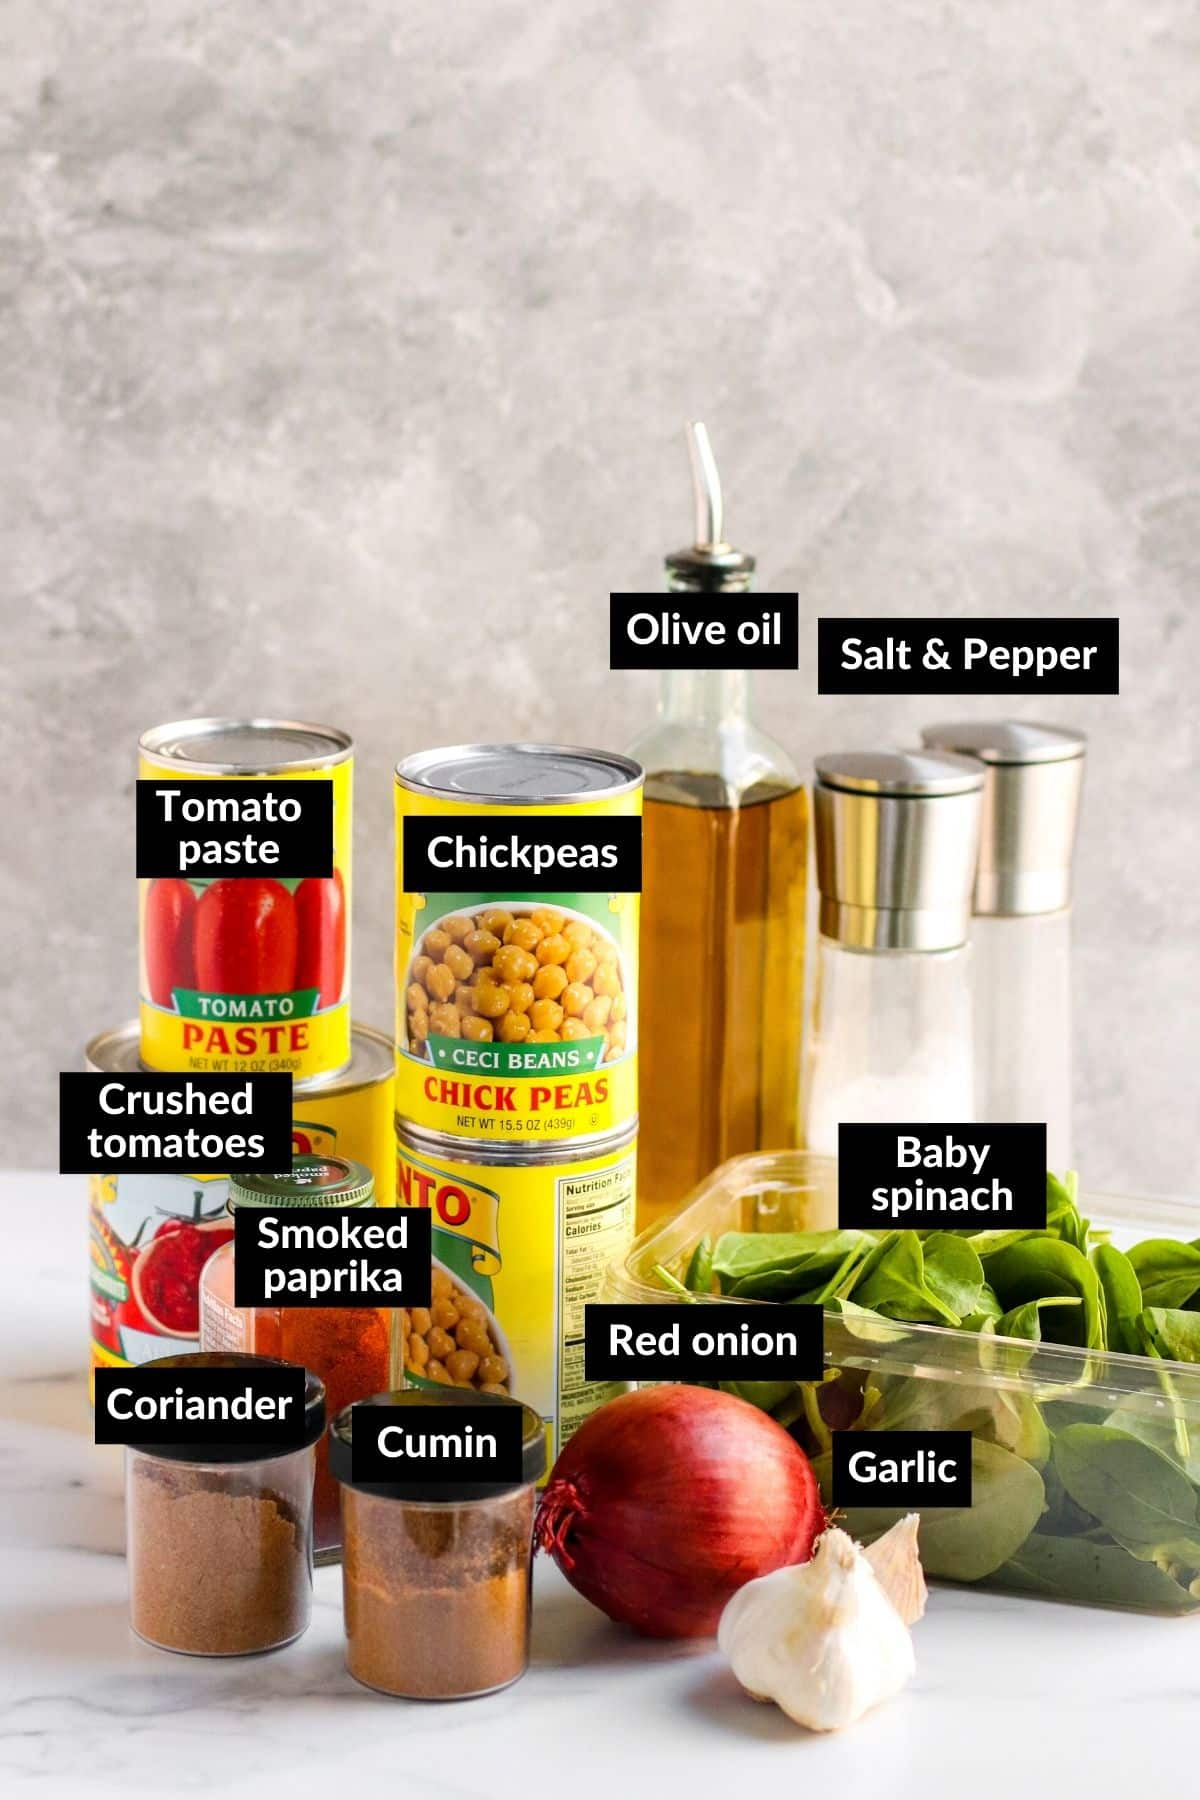 Labeled ingredients for making this recipe